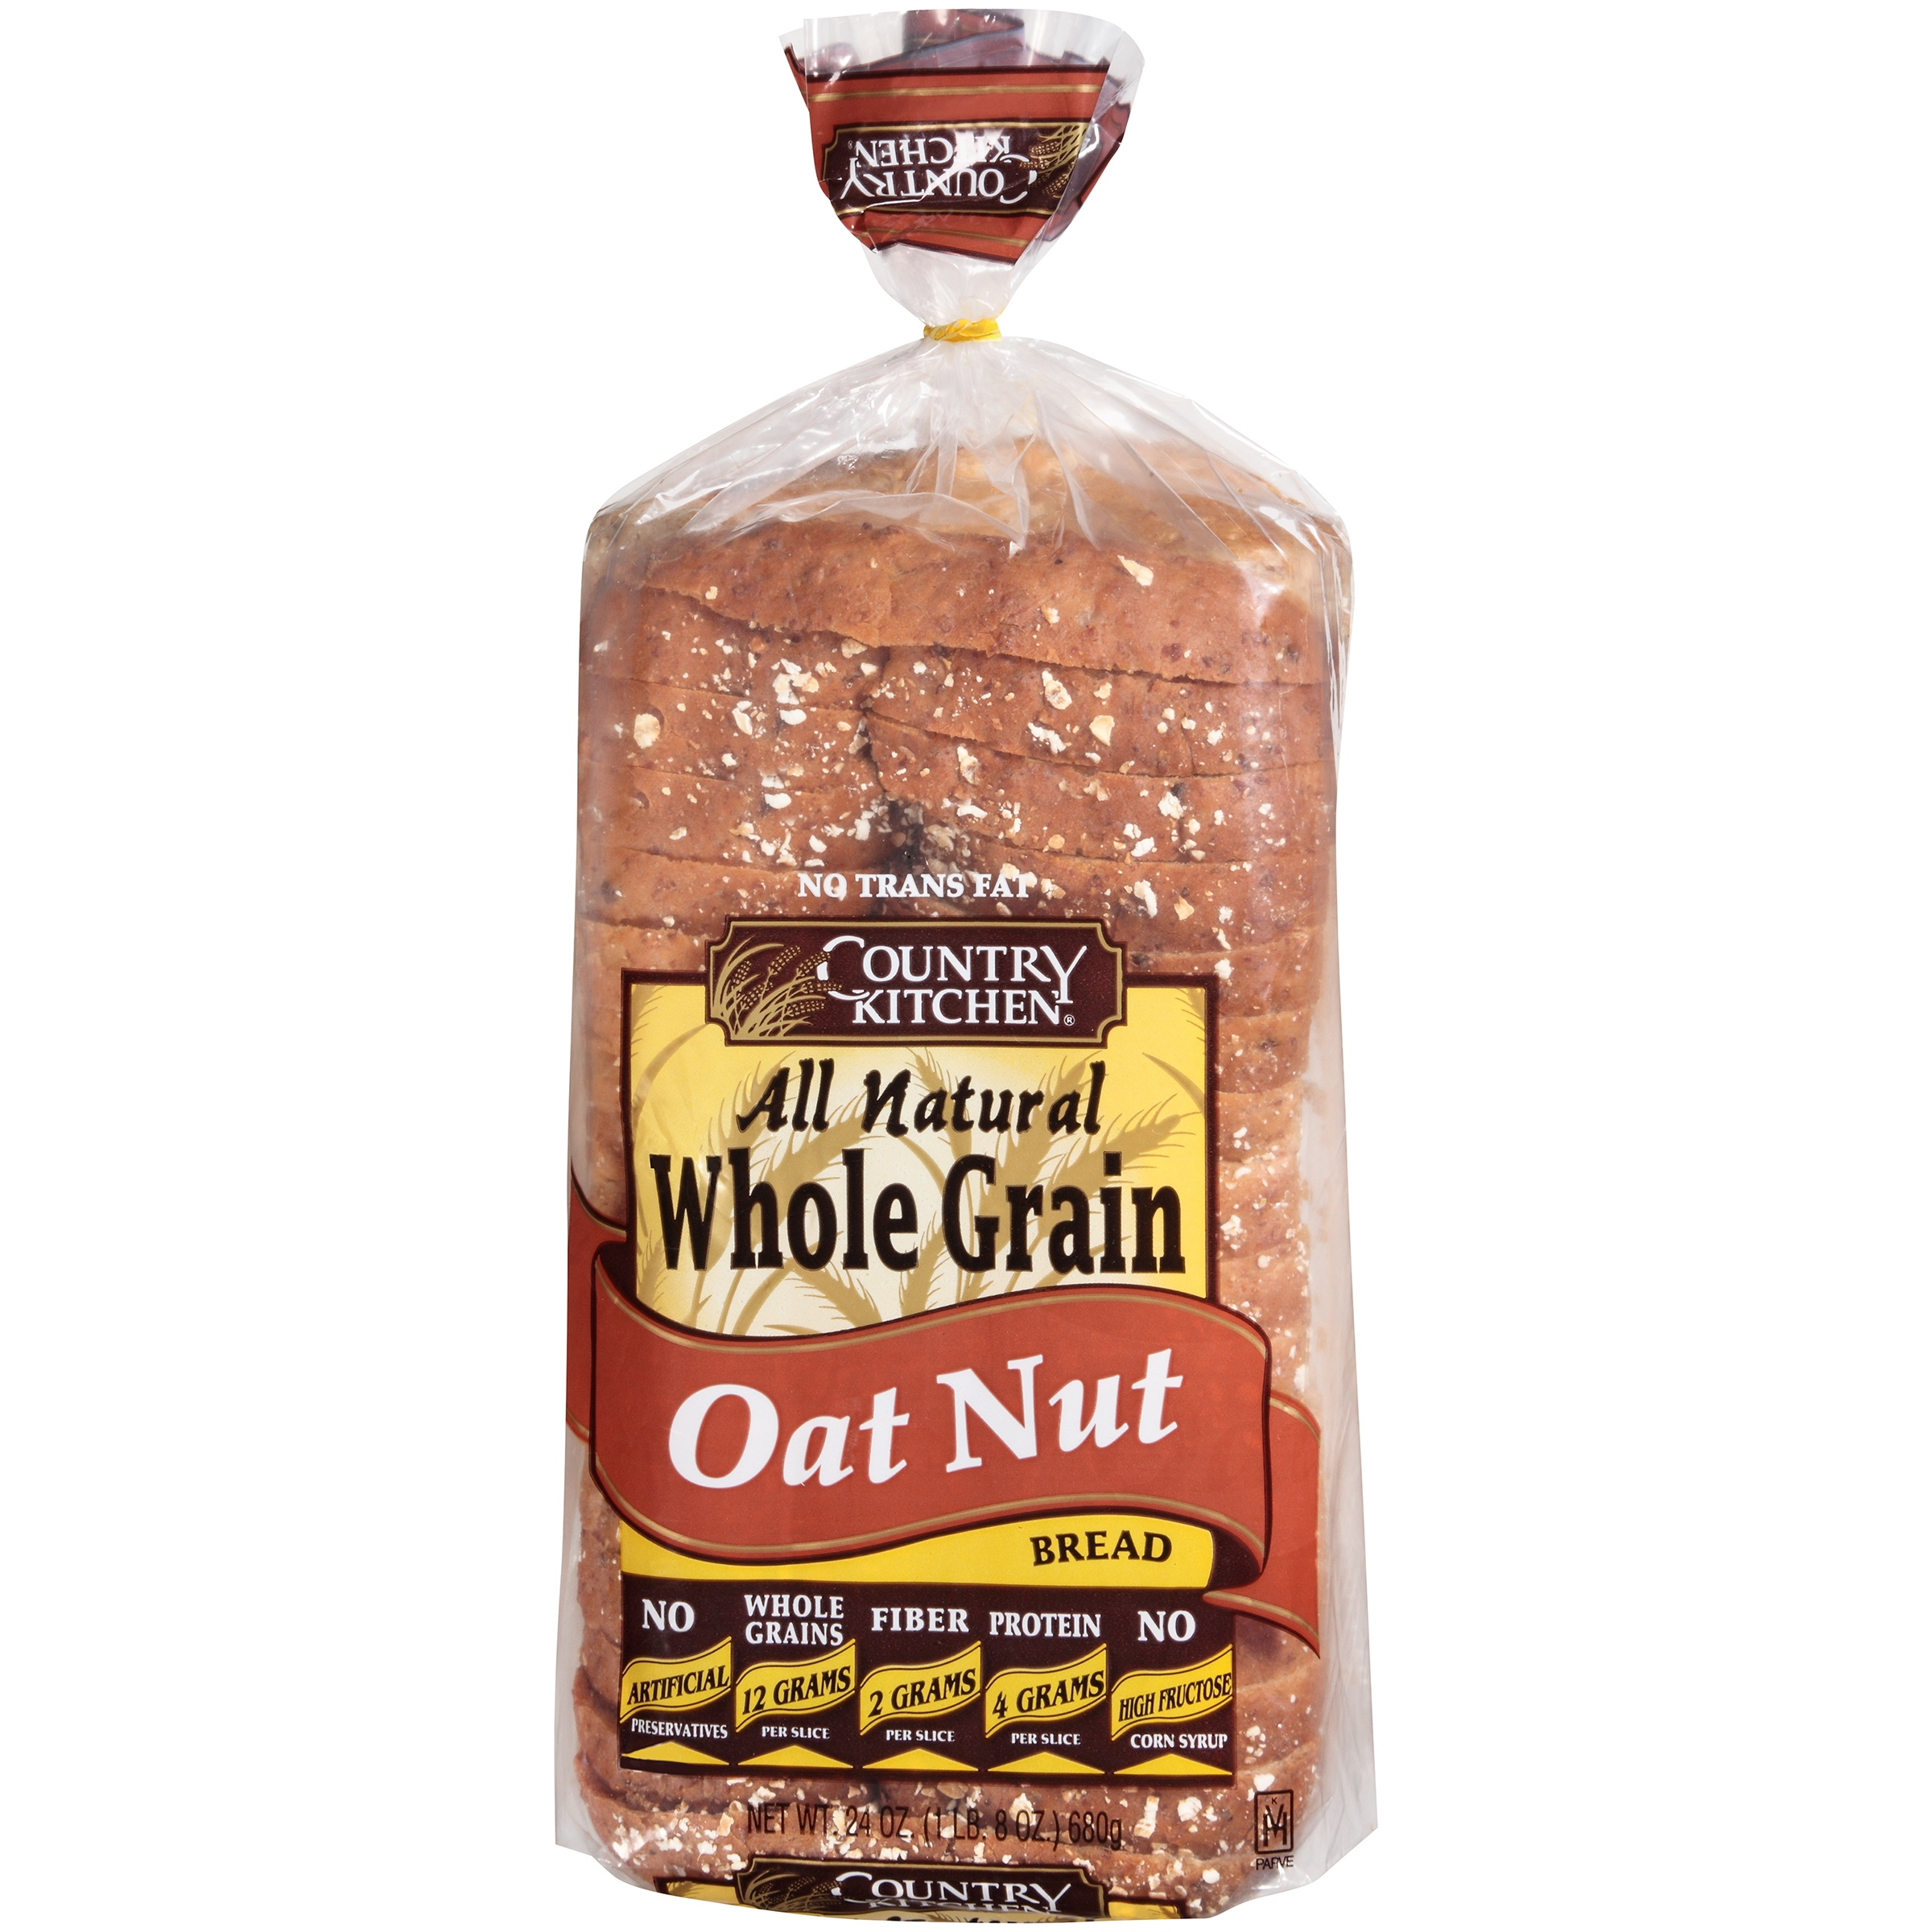 Country Kitchen® All Natural Whole Grain Oat Nut 24 oz. Loaf